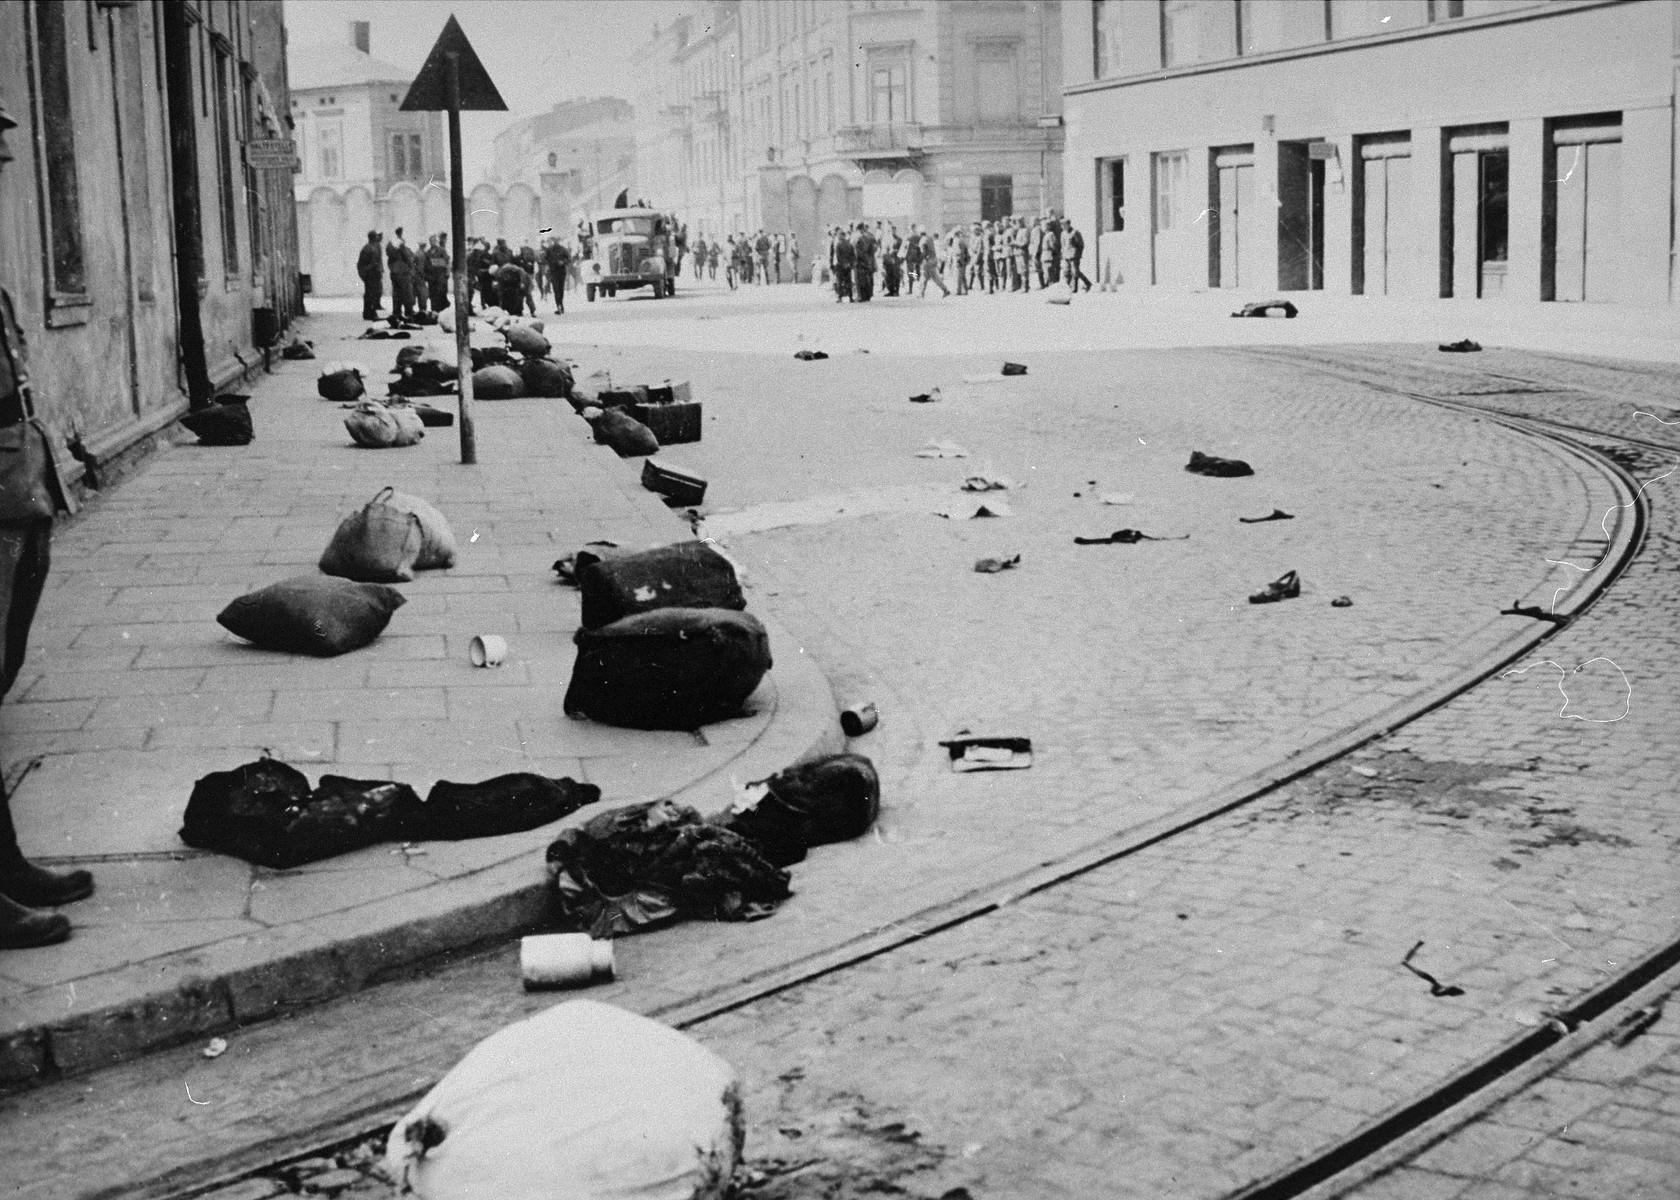 View of a major street in Krakow after the liquidation of the ghetto, which is strewn with the bundles of deported Jews.